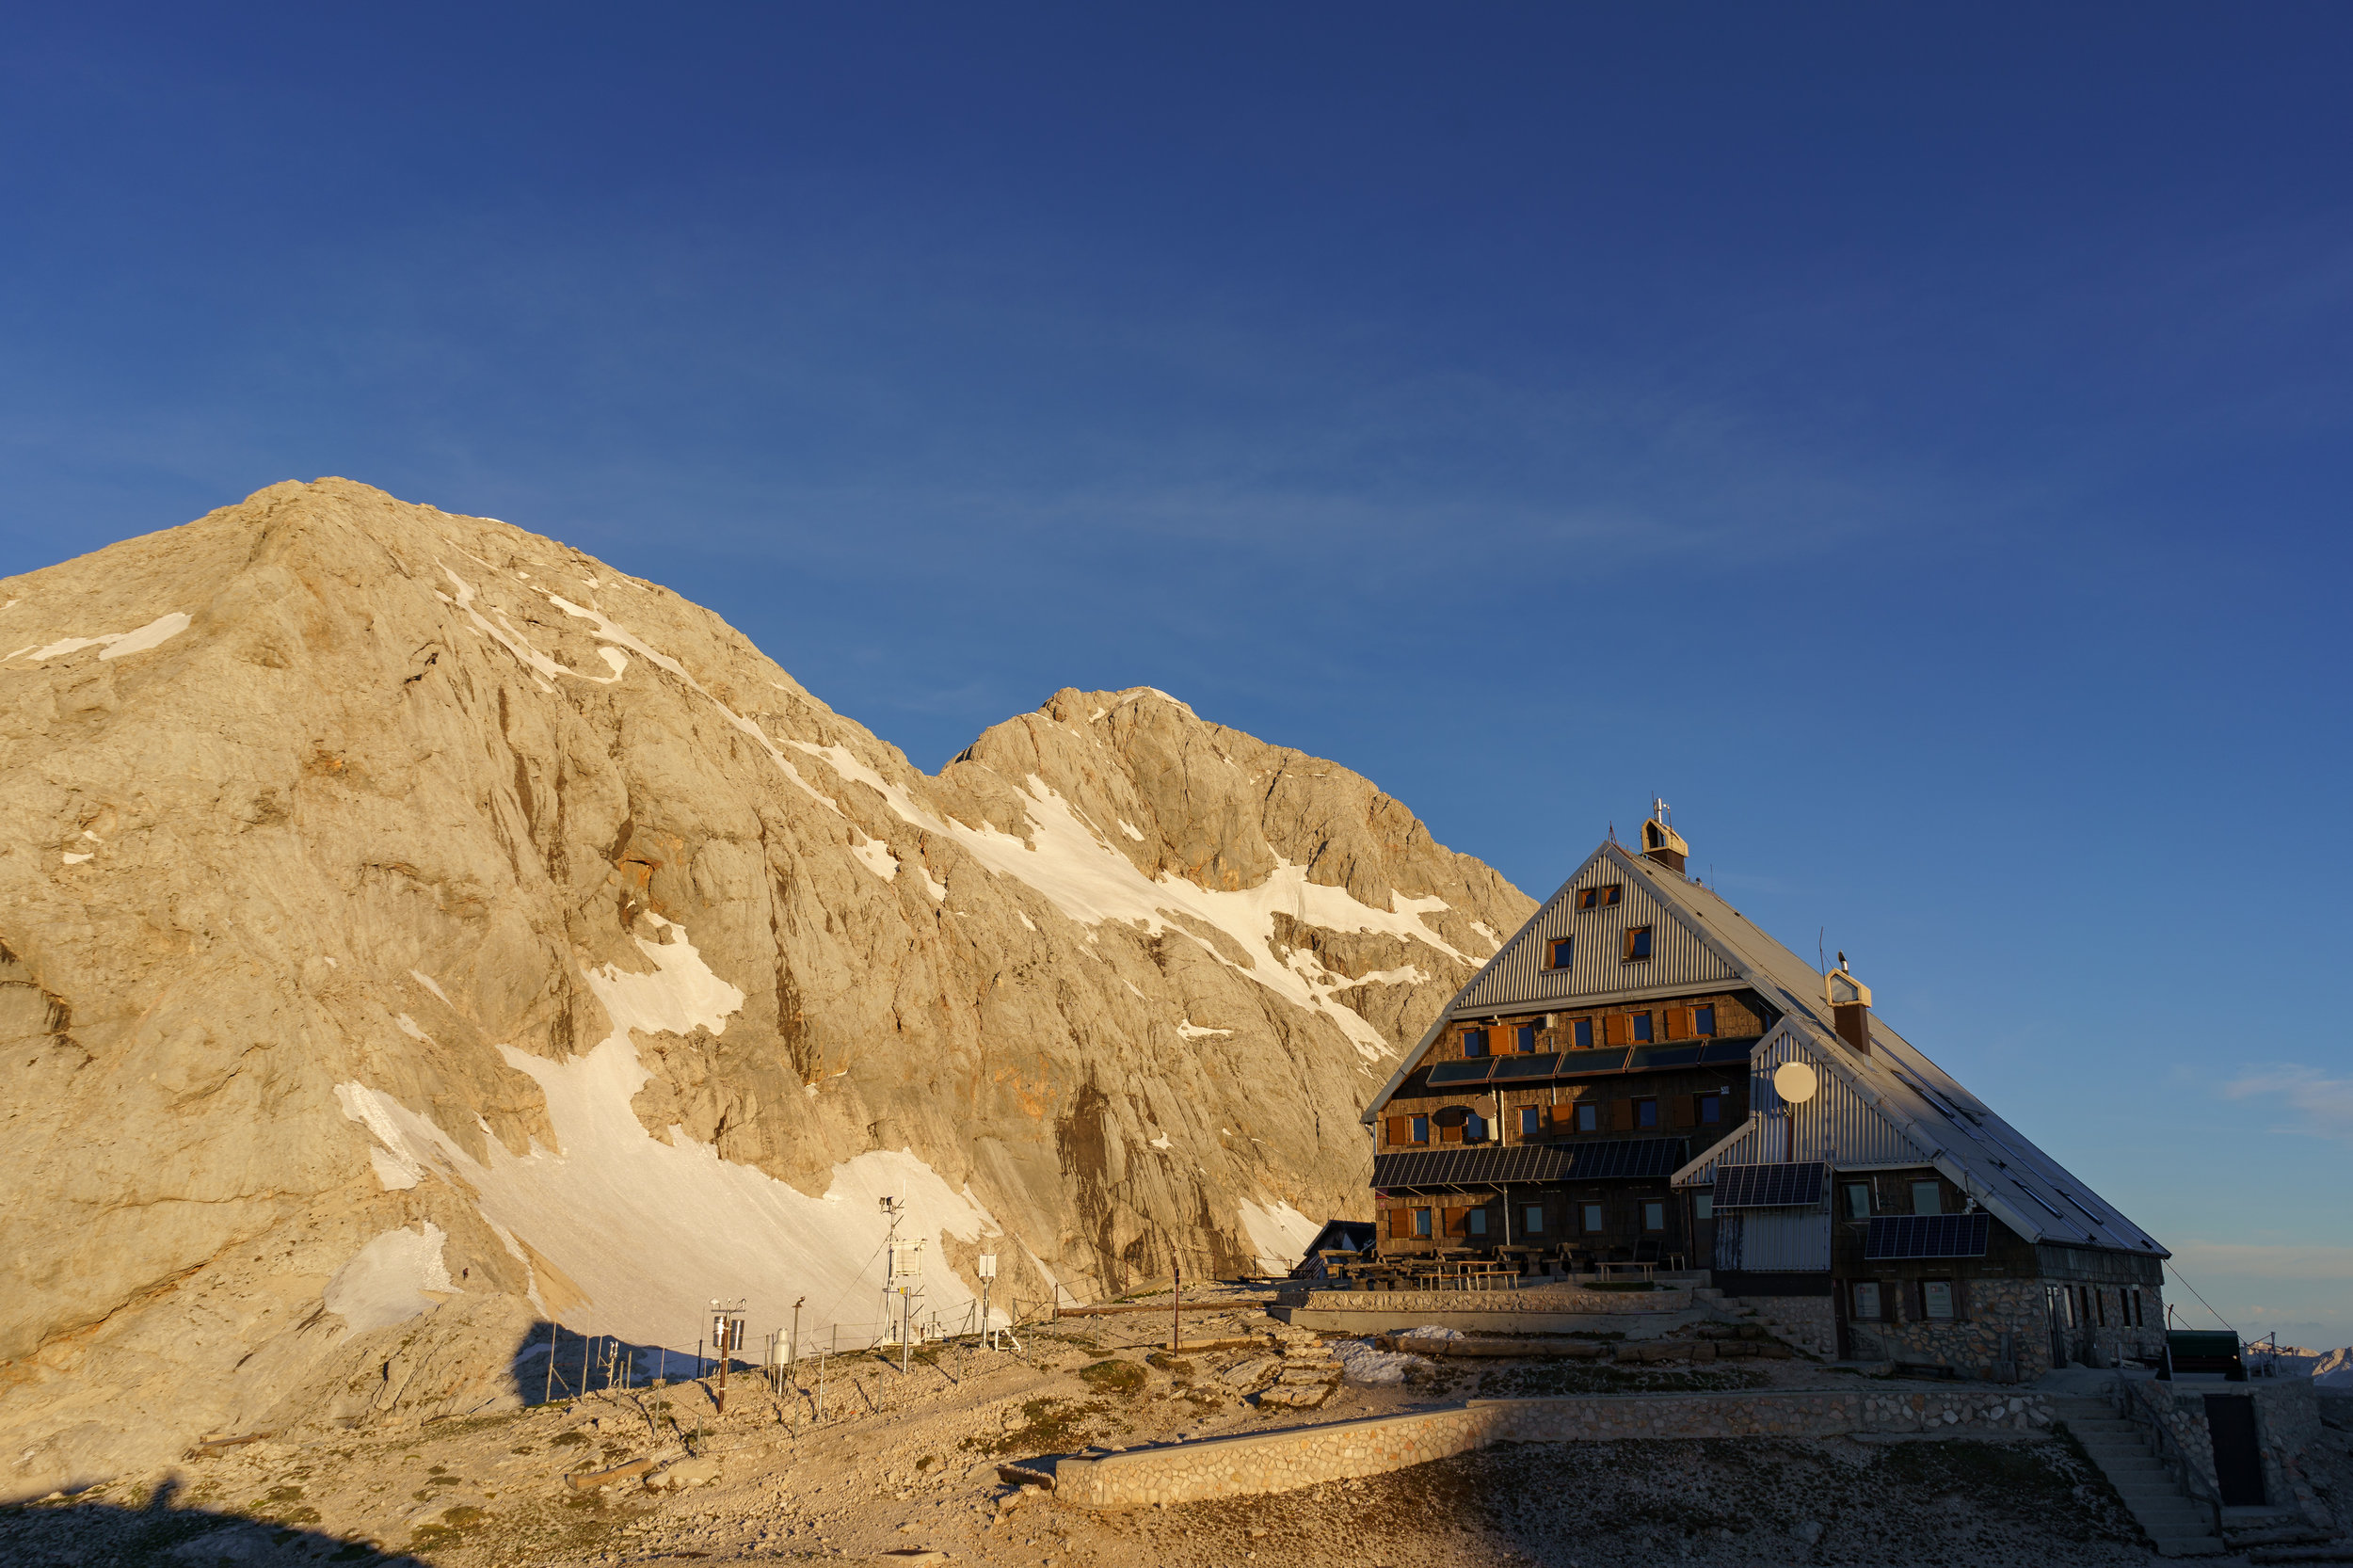 Kredarica mountain hut and Mt. Triglav.